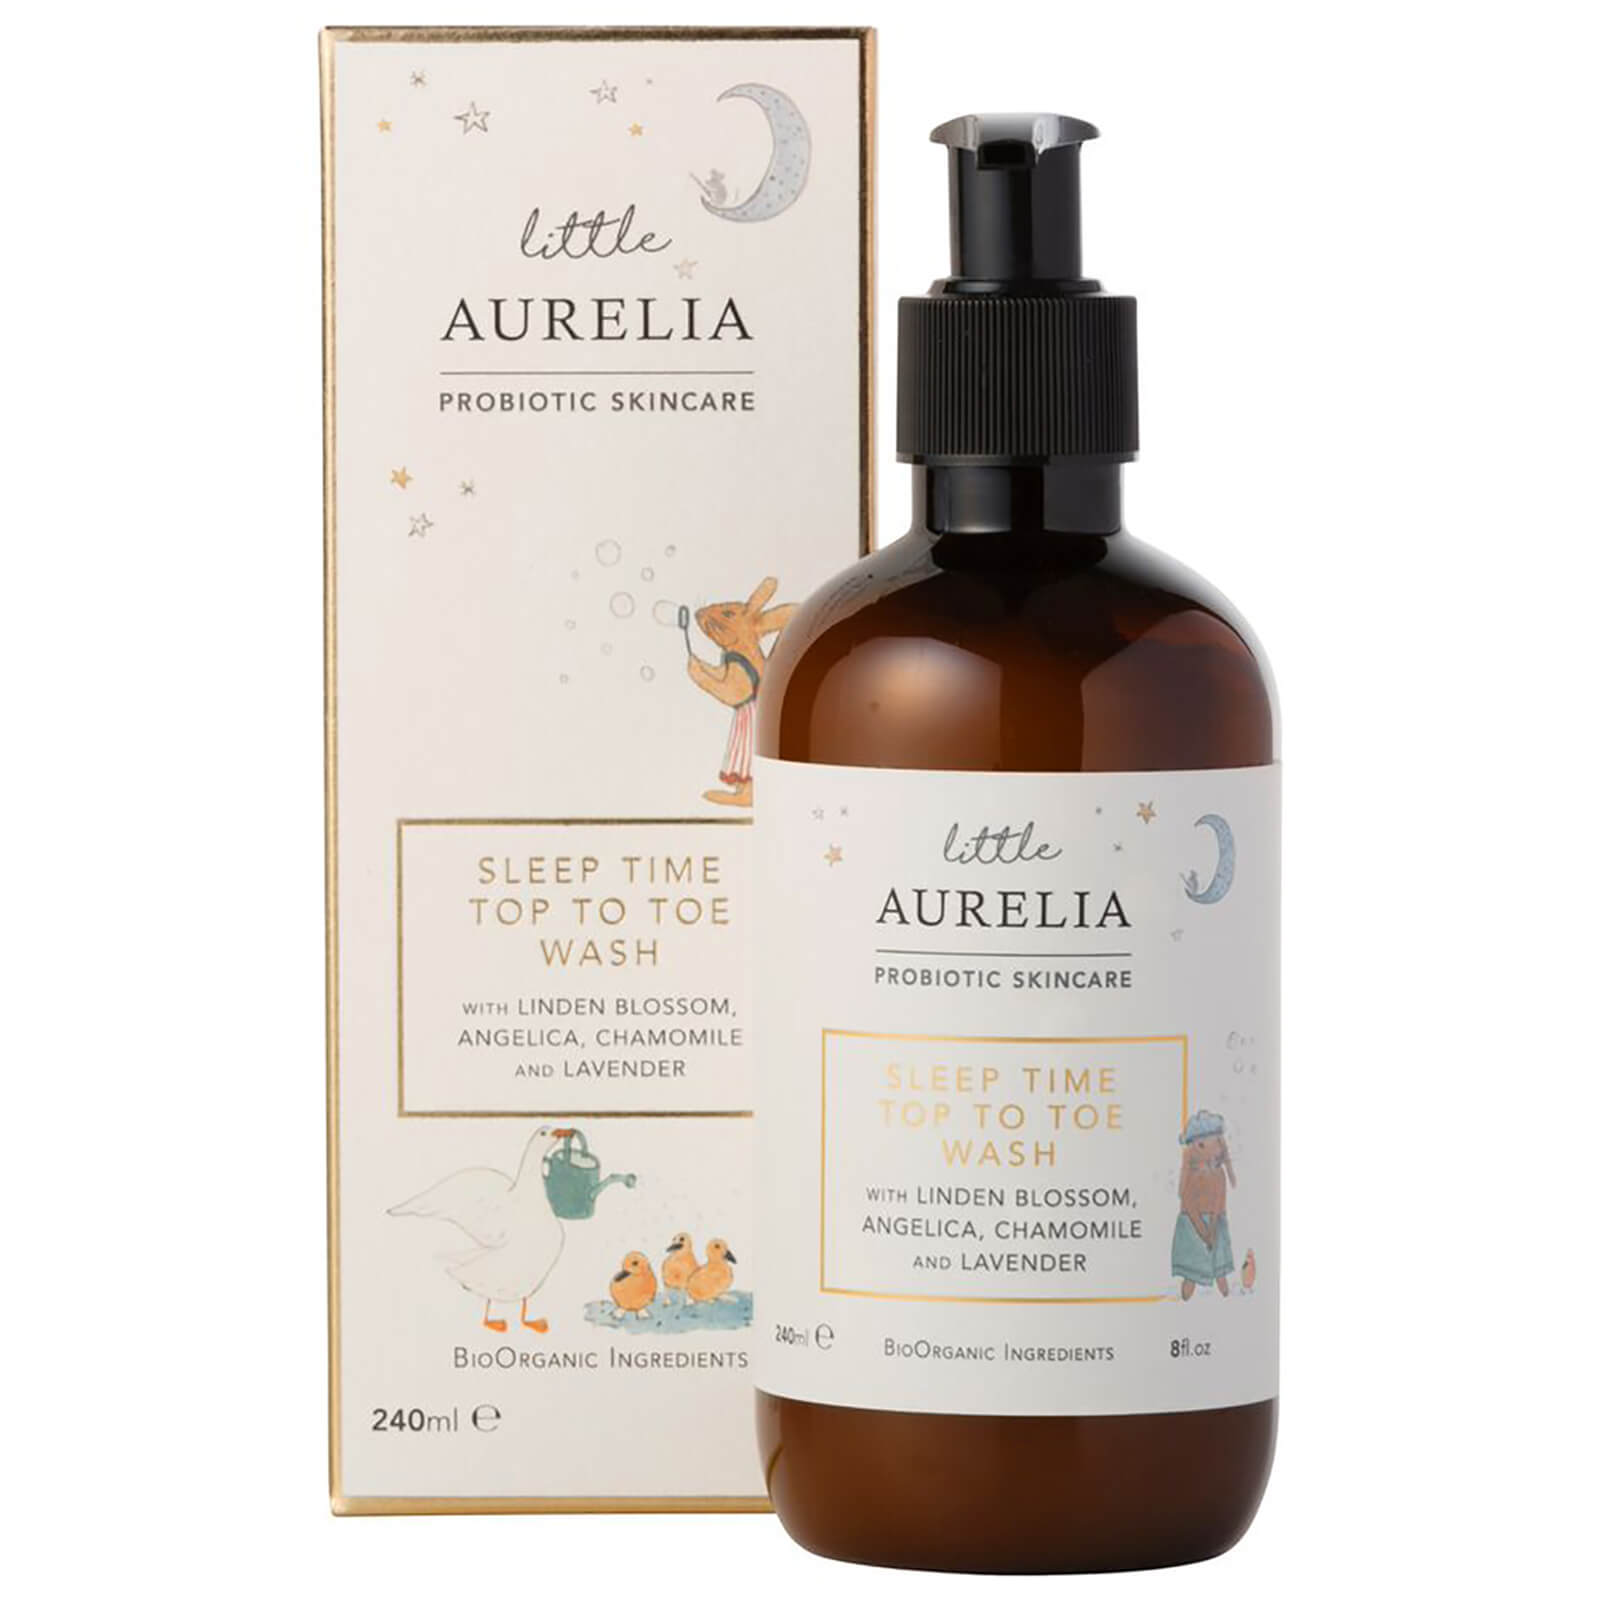 Little Aurelia From Probiotic Skincare Sleep Time Top To Toe Deryan Toddler Luxe Cream Pueter Travel Sleeping Cot Bed Product Description